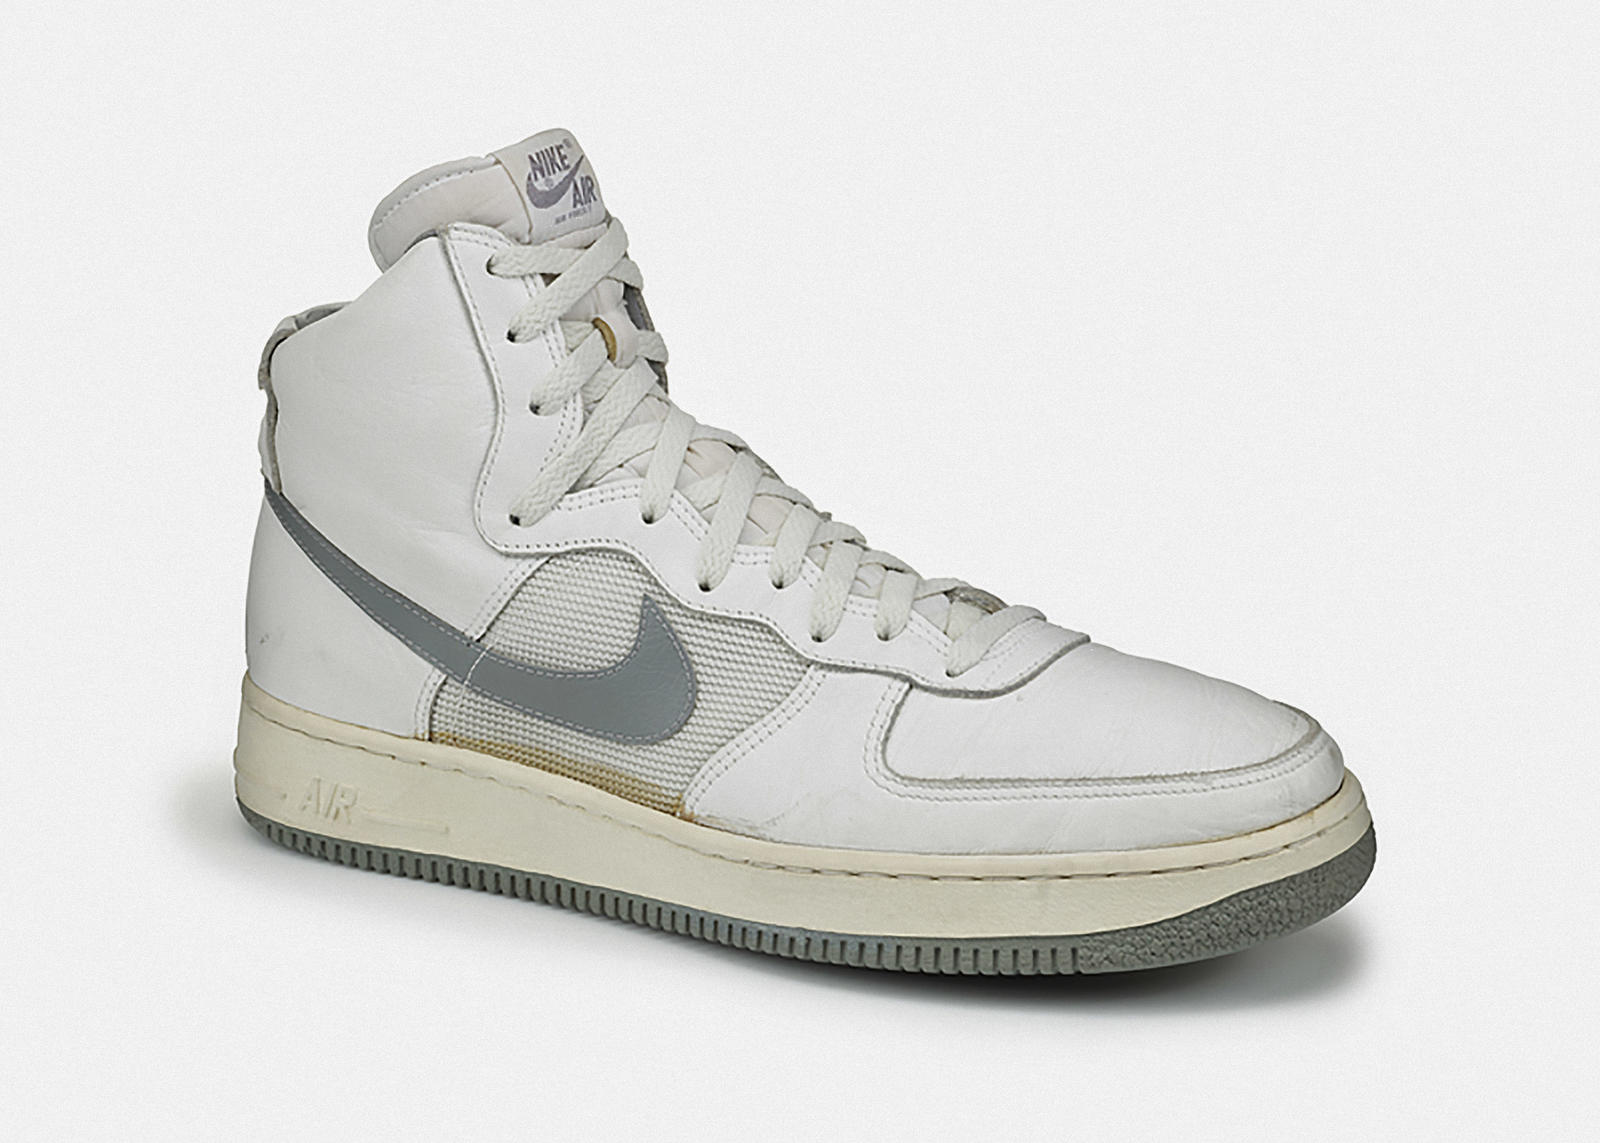 what year did the nike air force 1 come out